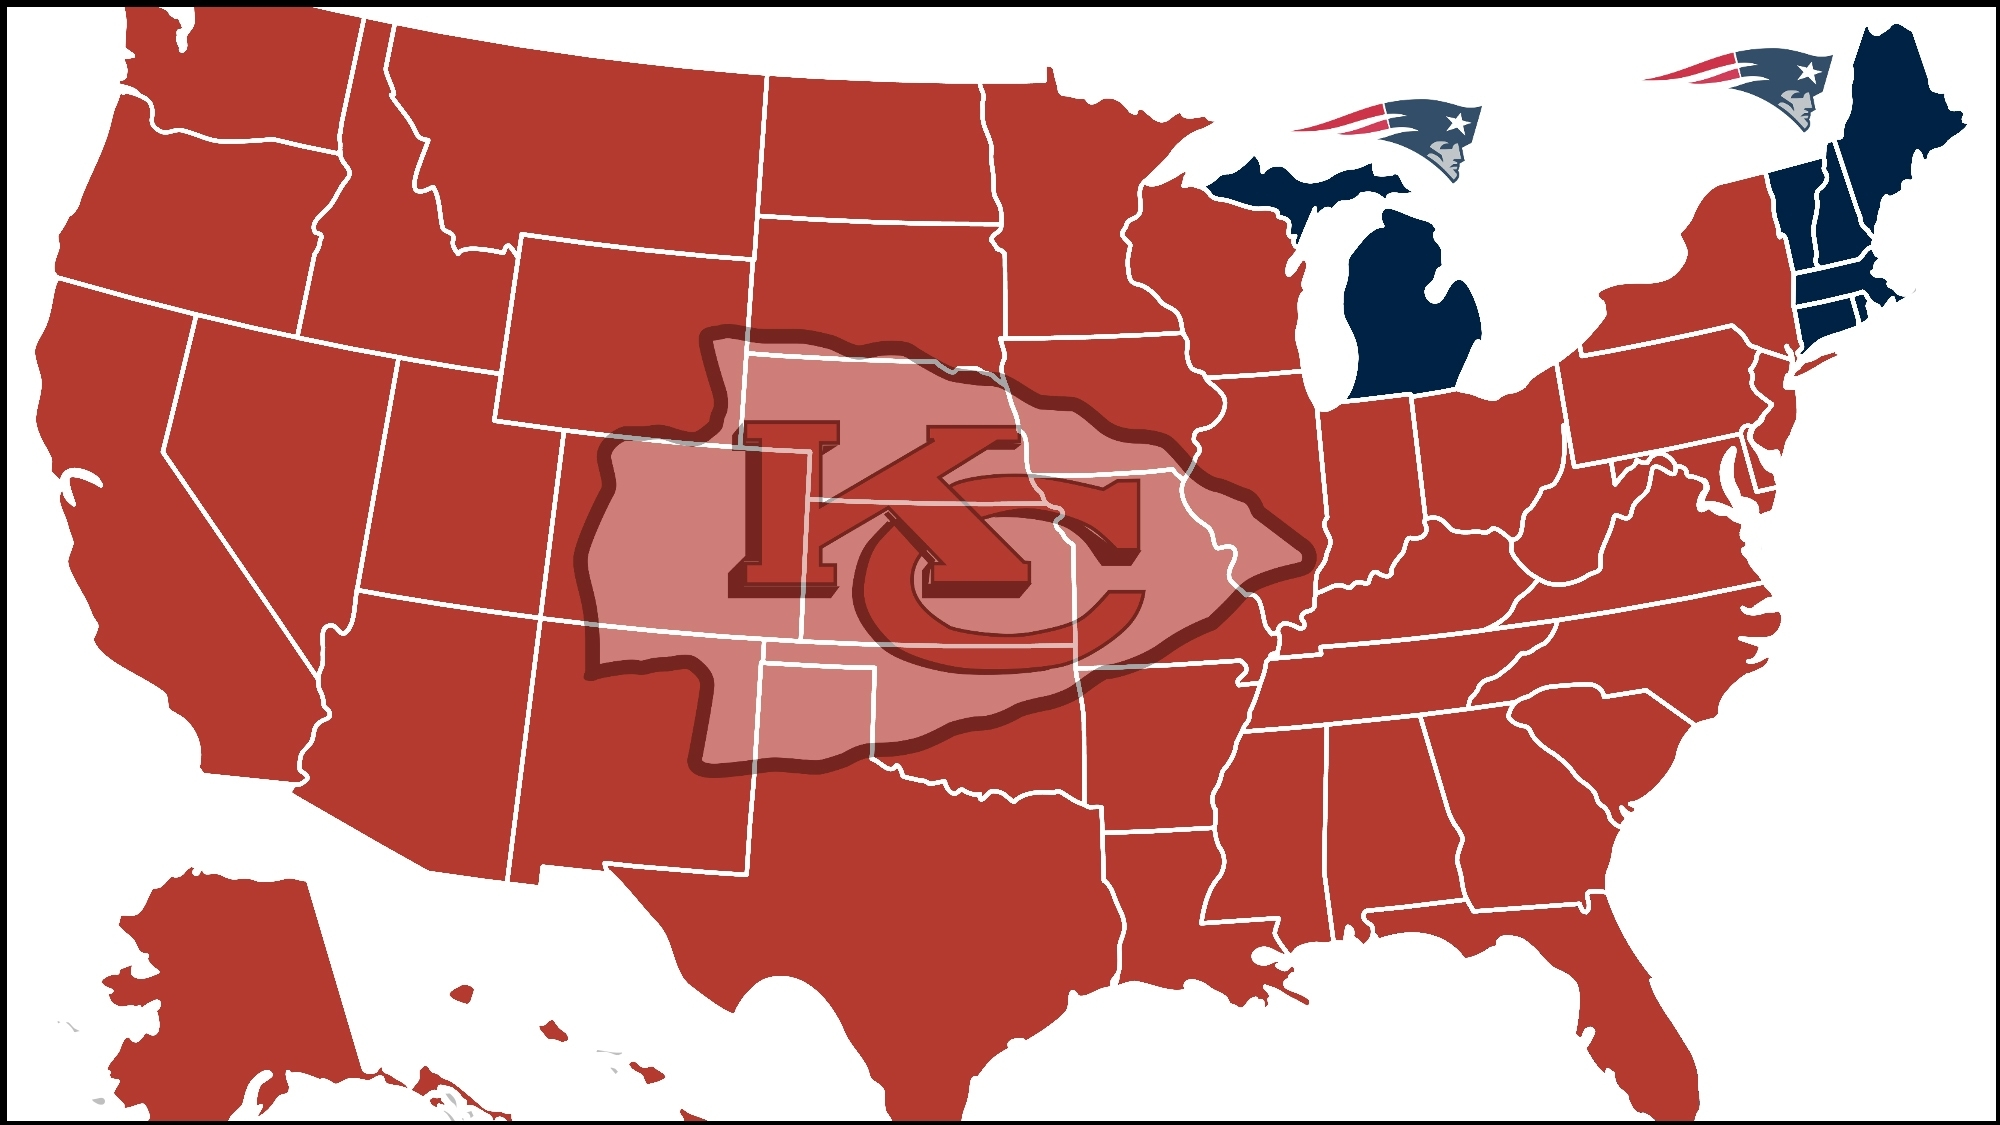 Almost Entire Country Will Be Rooting Against Patriots In within Map Of Who Is Rooting For Super Bowl